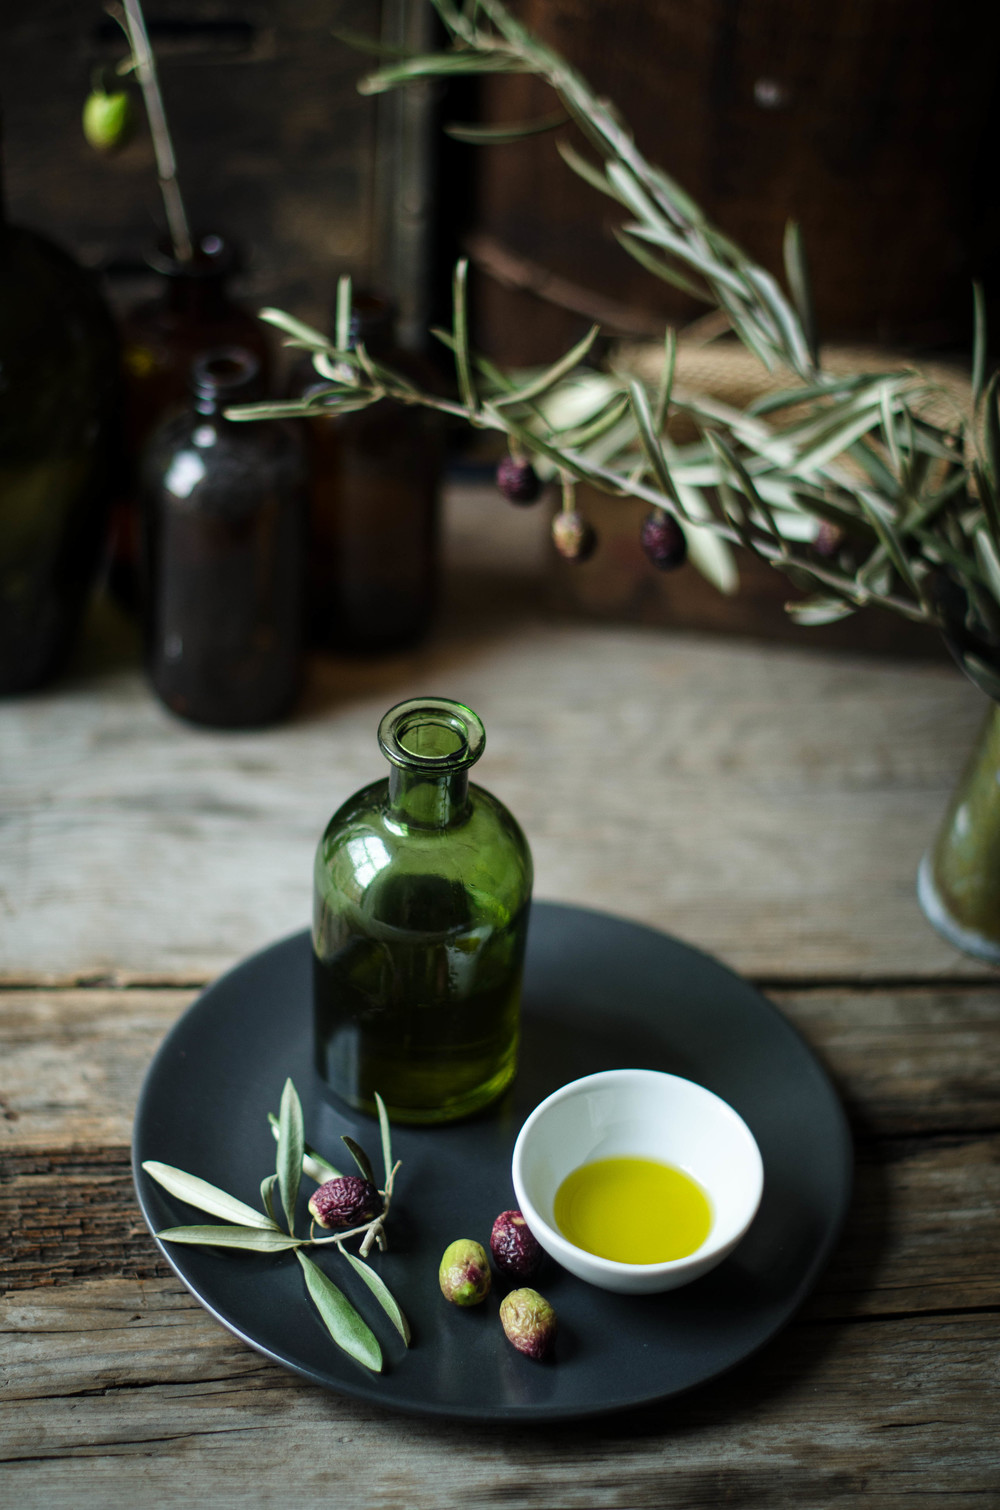 ROSE & IVY JOURNAL OLIVE OIL